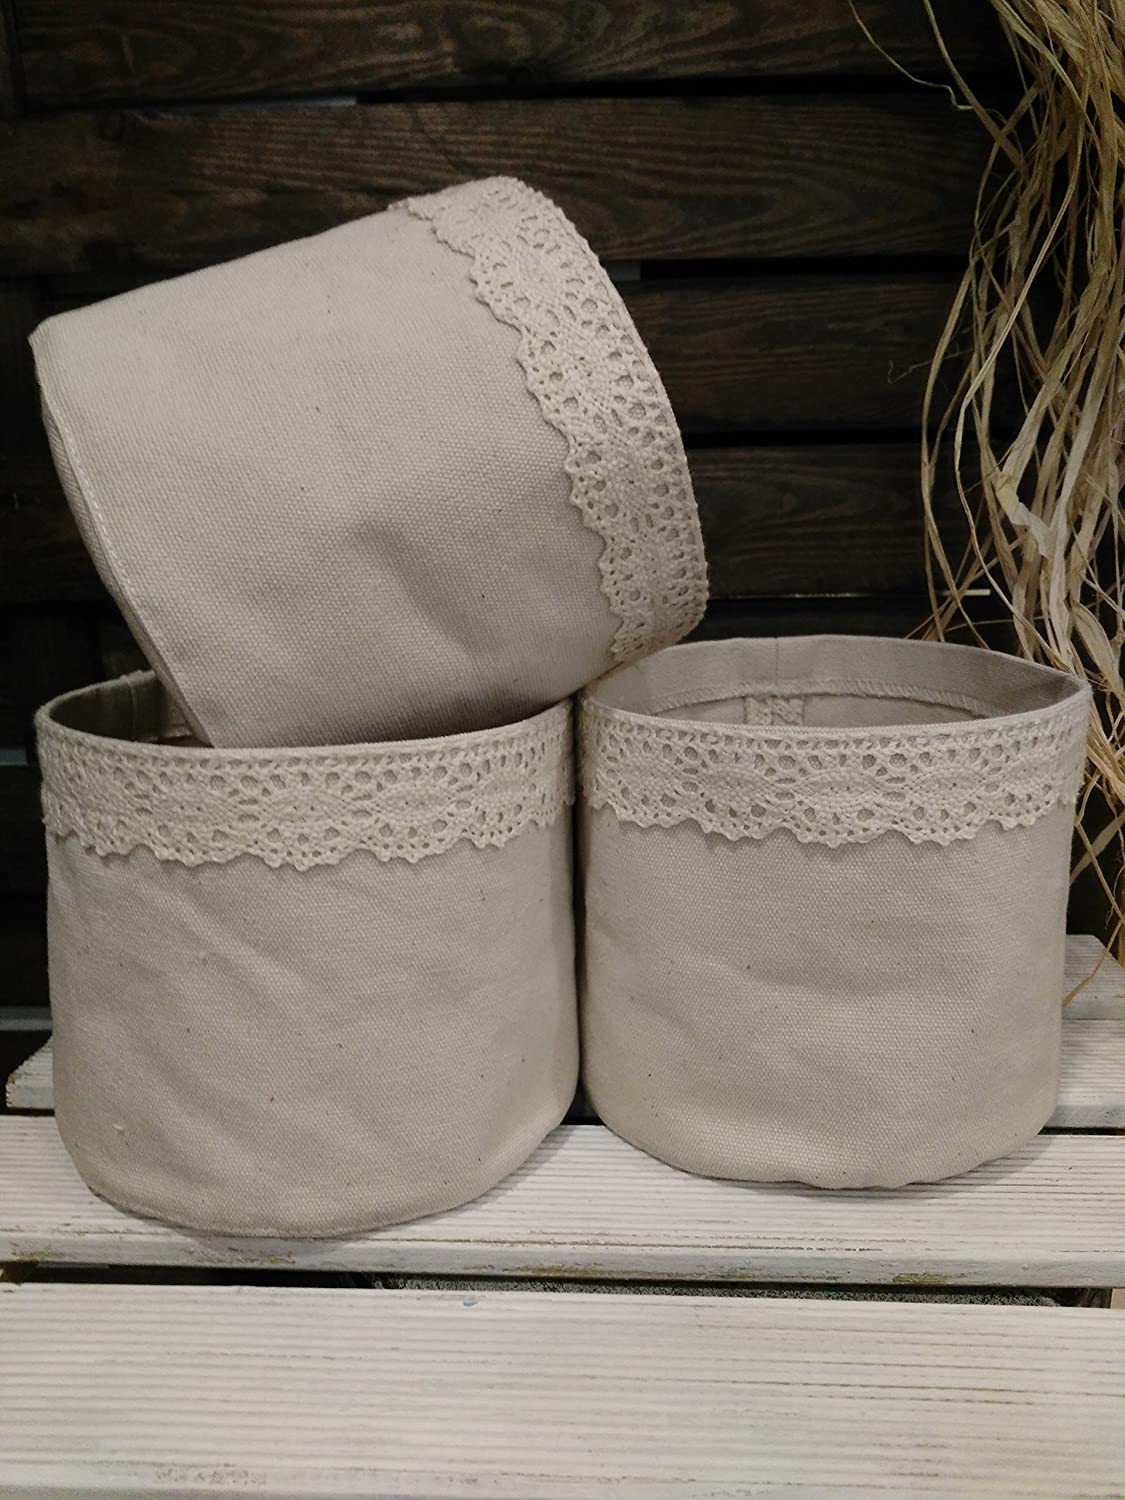 Kitchen organizing, rustic storage bins, small fabric containers, Set of 3 canvas baskets, fabric bowls